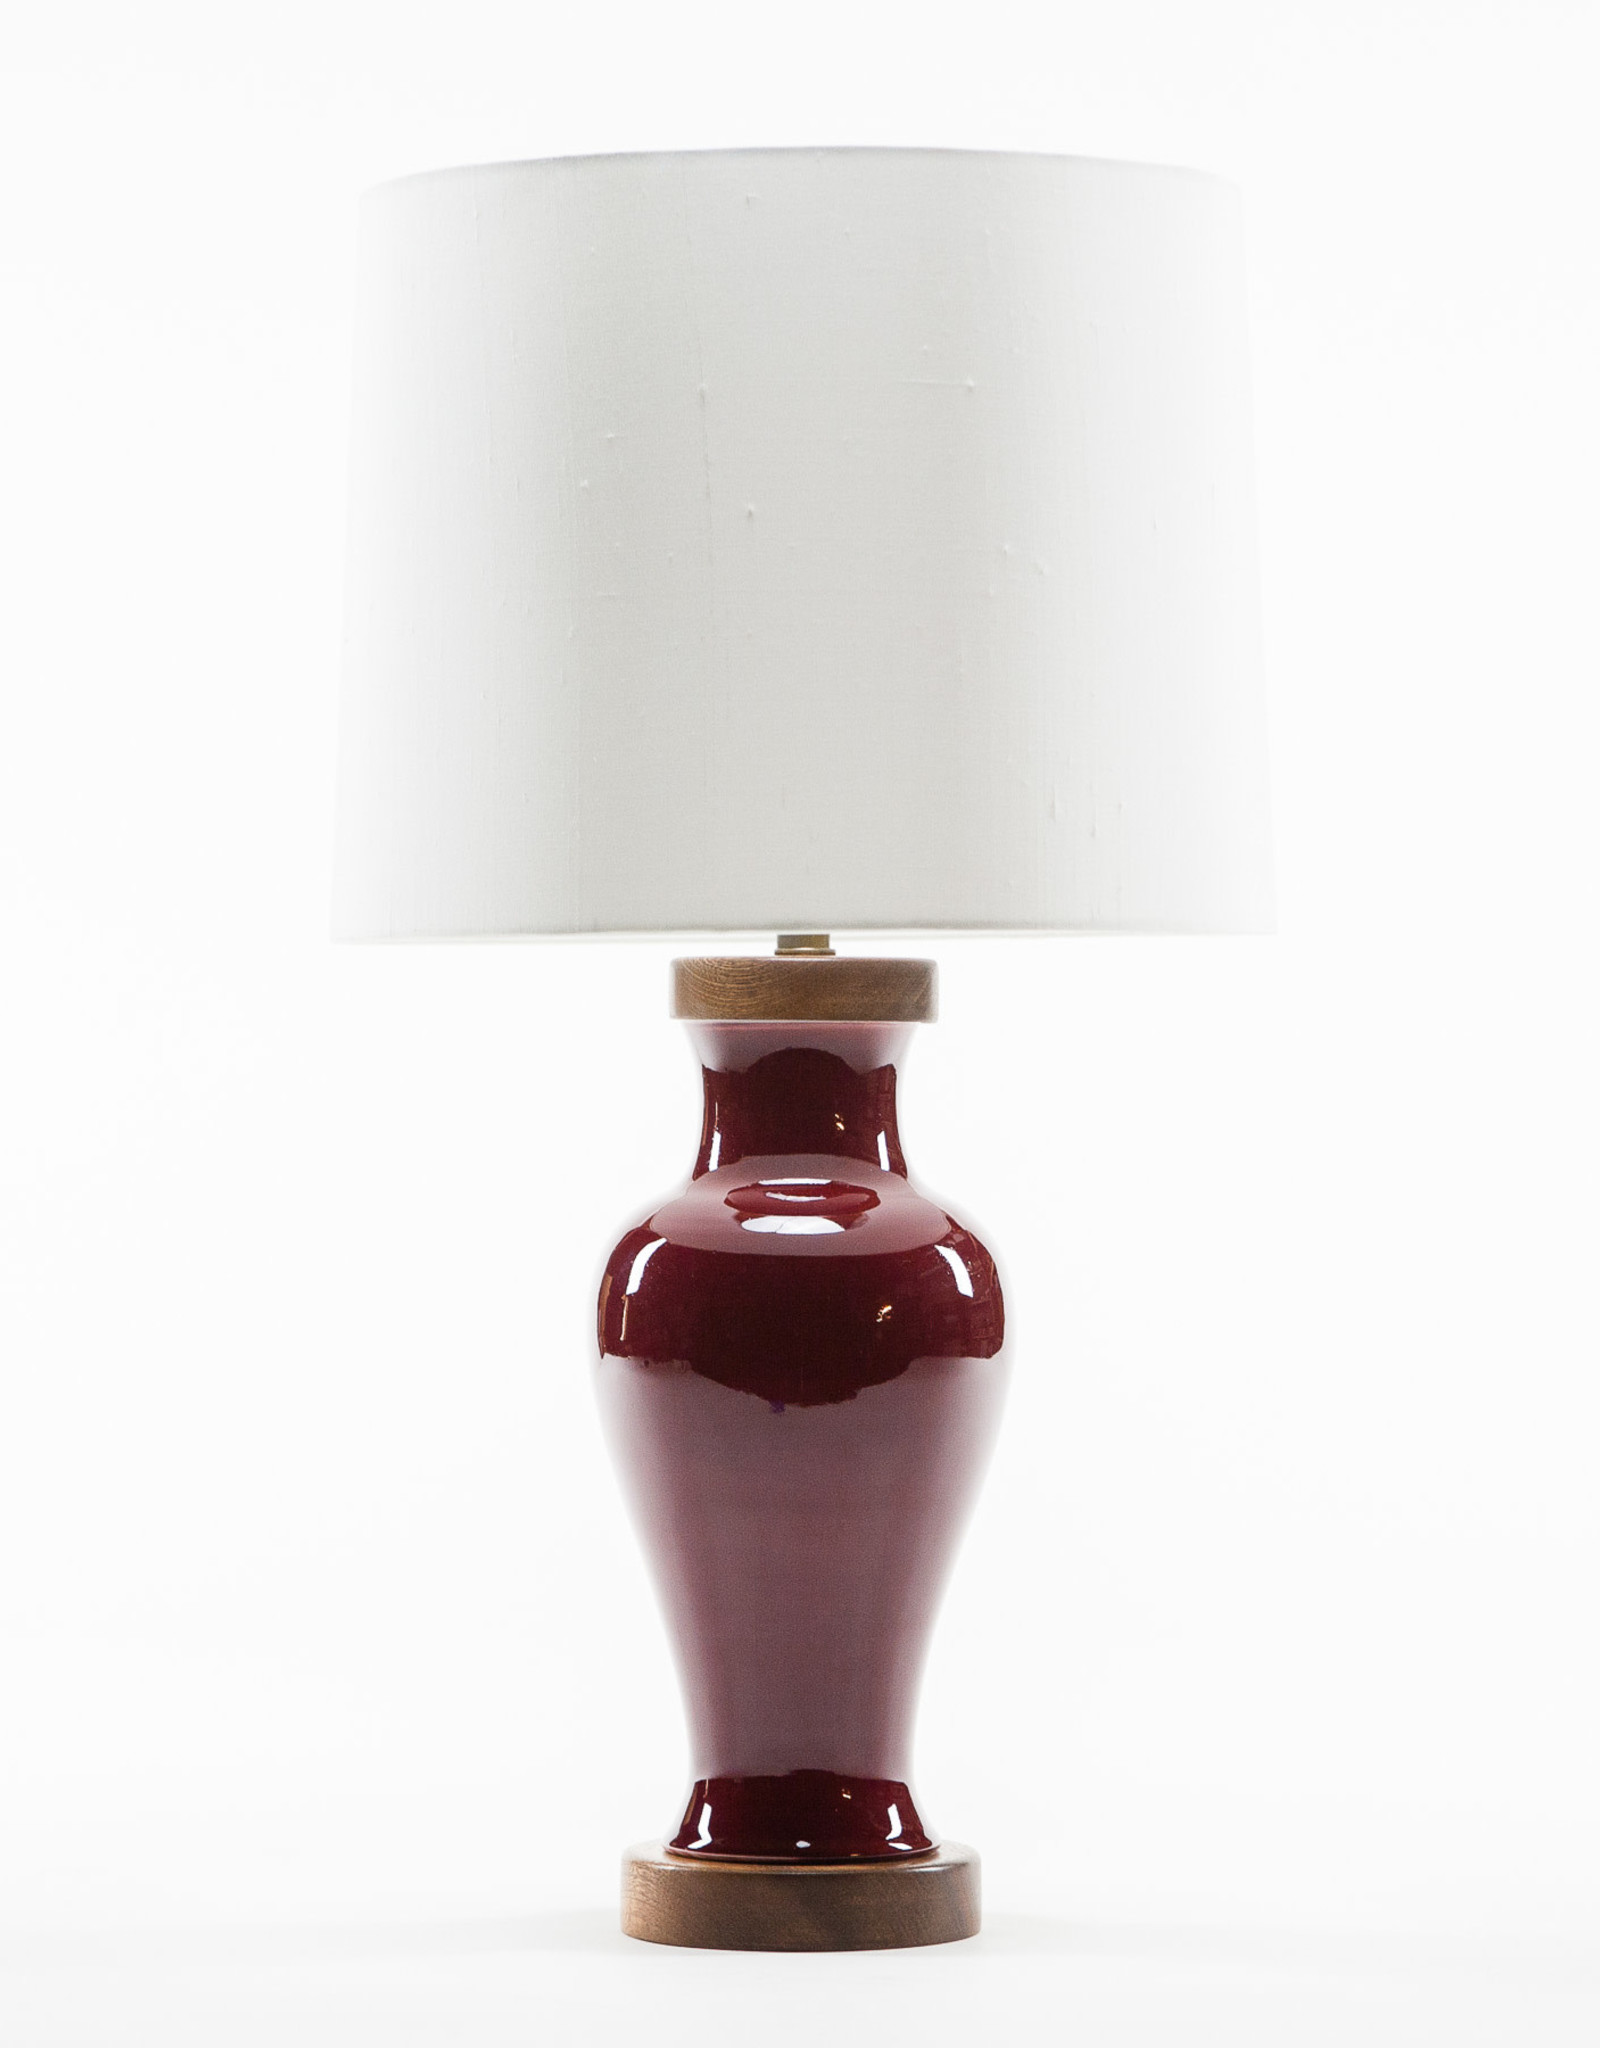 Lawrence & Scott Gabrielle Baluster Porcelain Lamp in Pinot Red